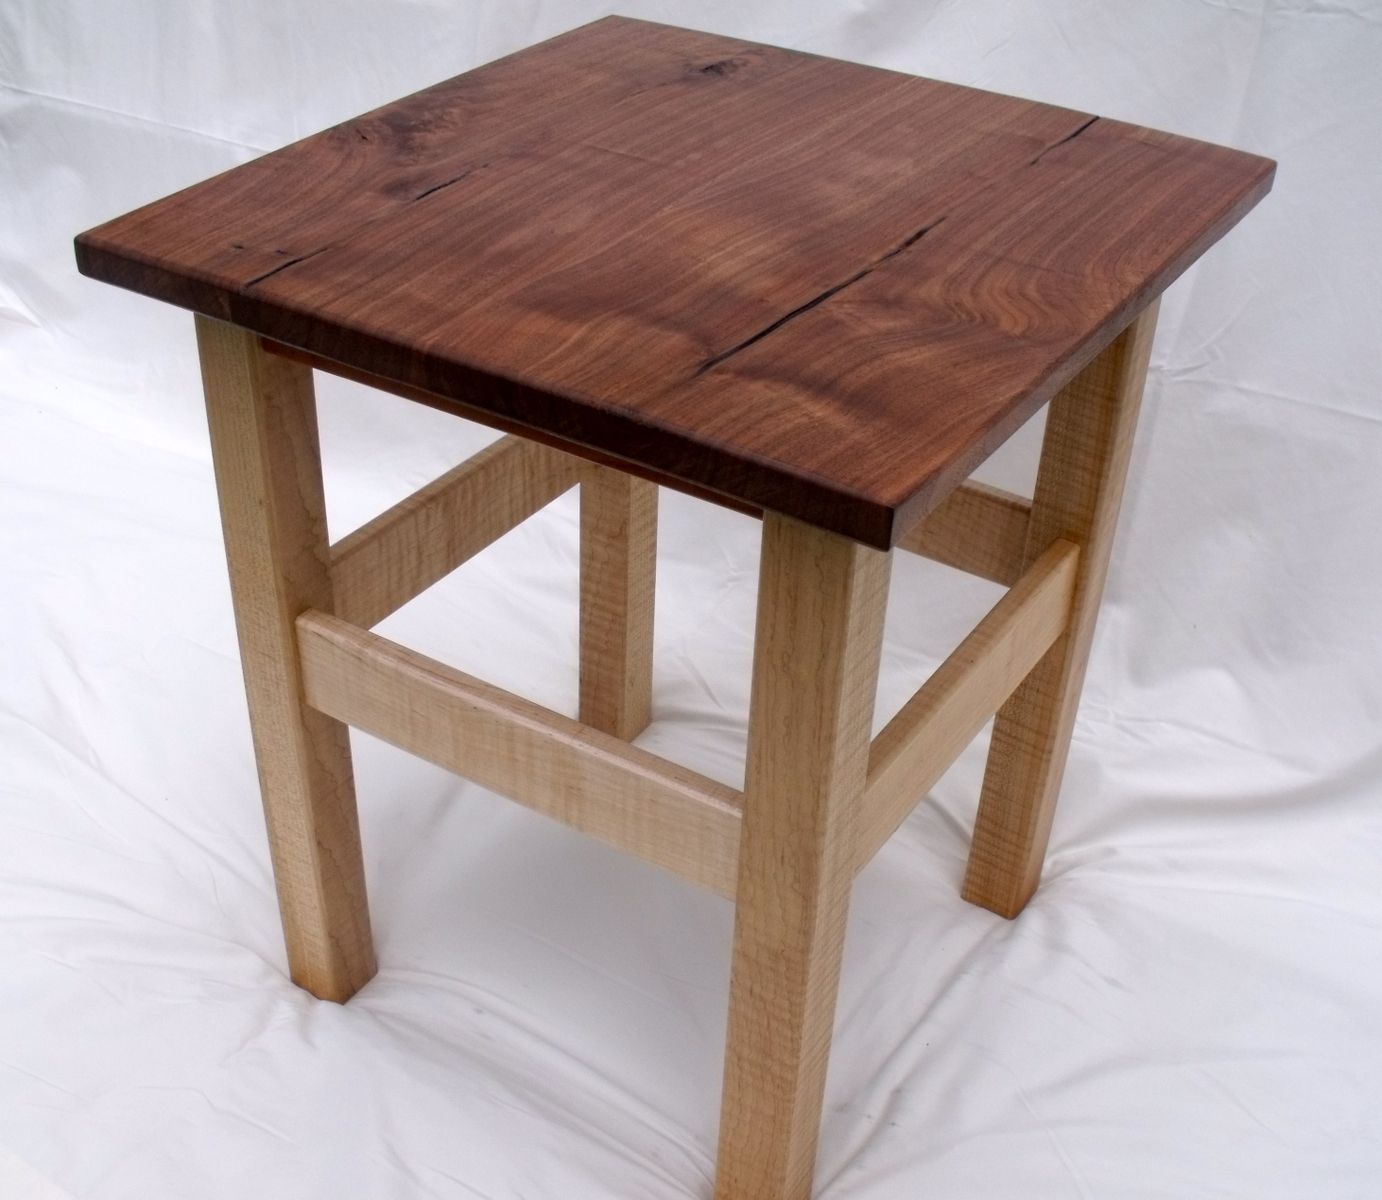 geometric side table the fantastic beautiful rustic walnut end black tables with drawer winsome autumn runner and glass coffee sets dog crate circle wooden litter box large